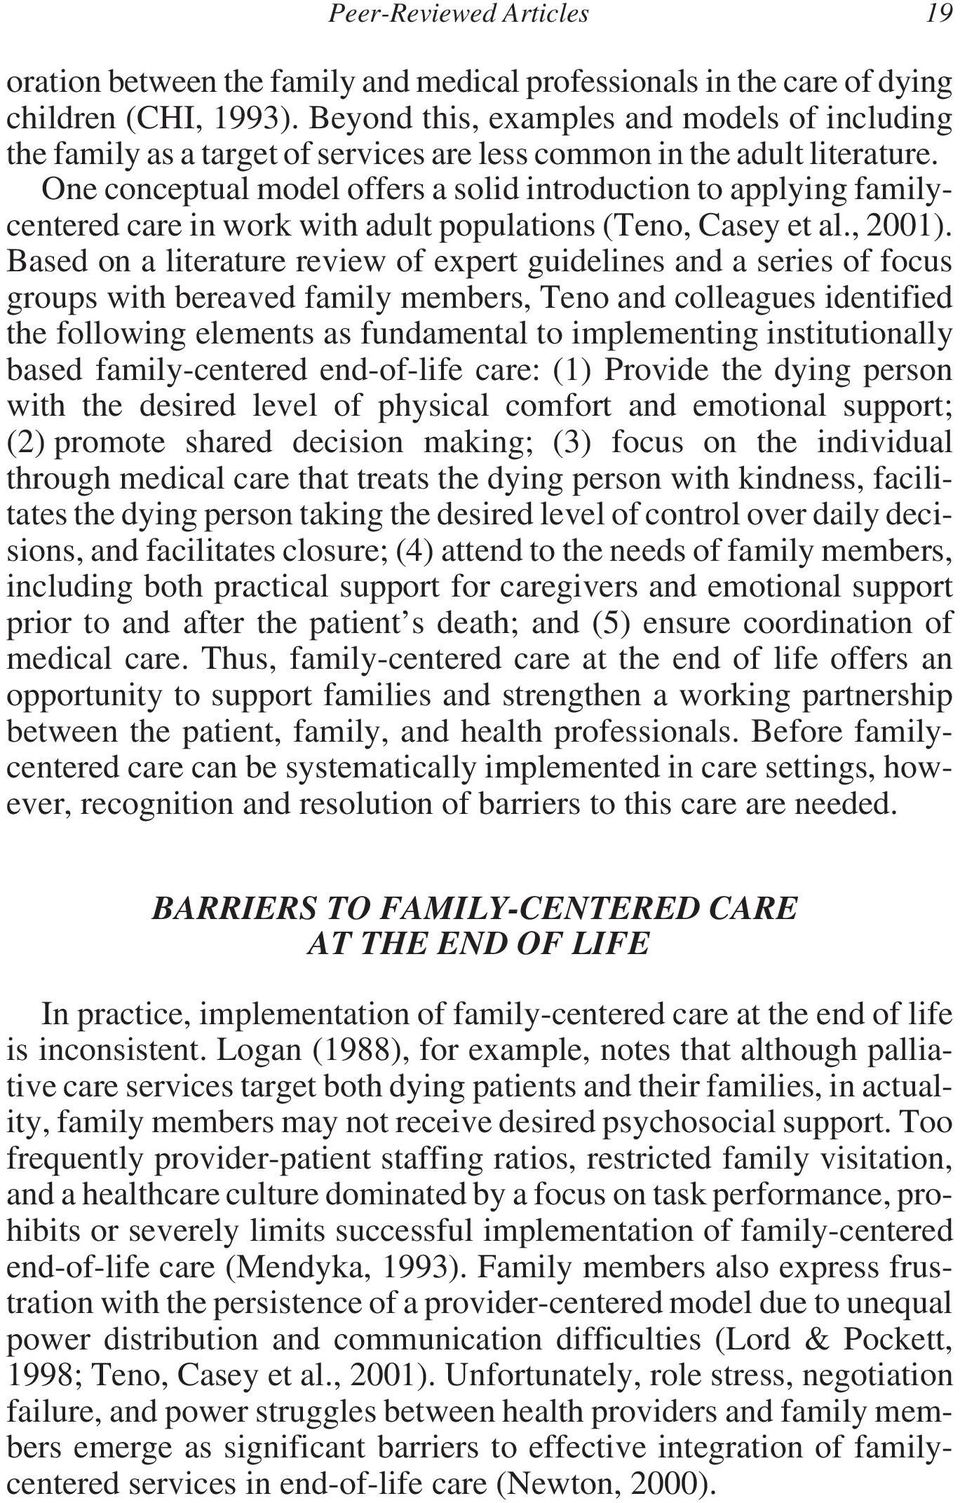 One conceptual model offers a solid introduction to applying familycentered care in work with adult populations (Teno, Casey et al., 2001).